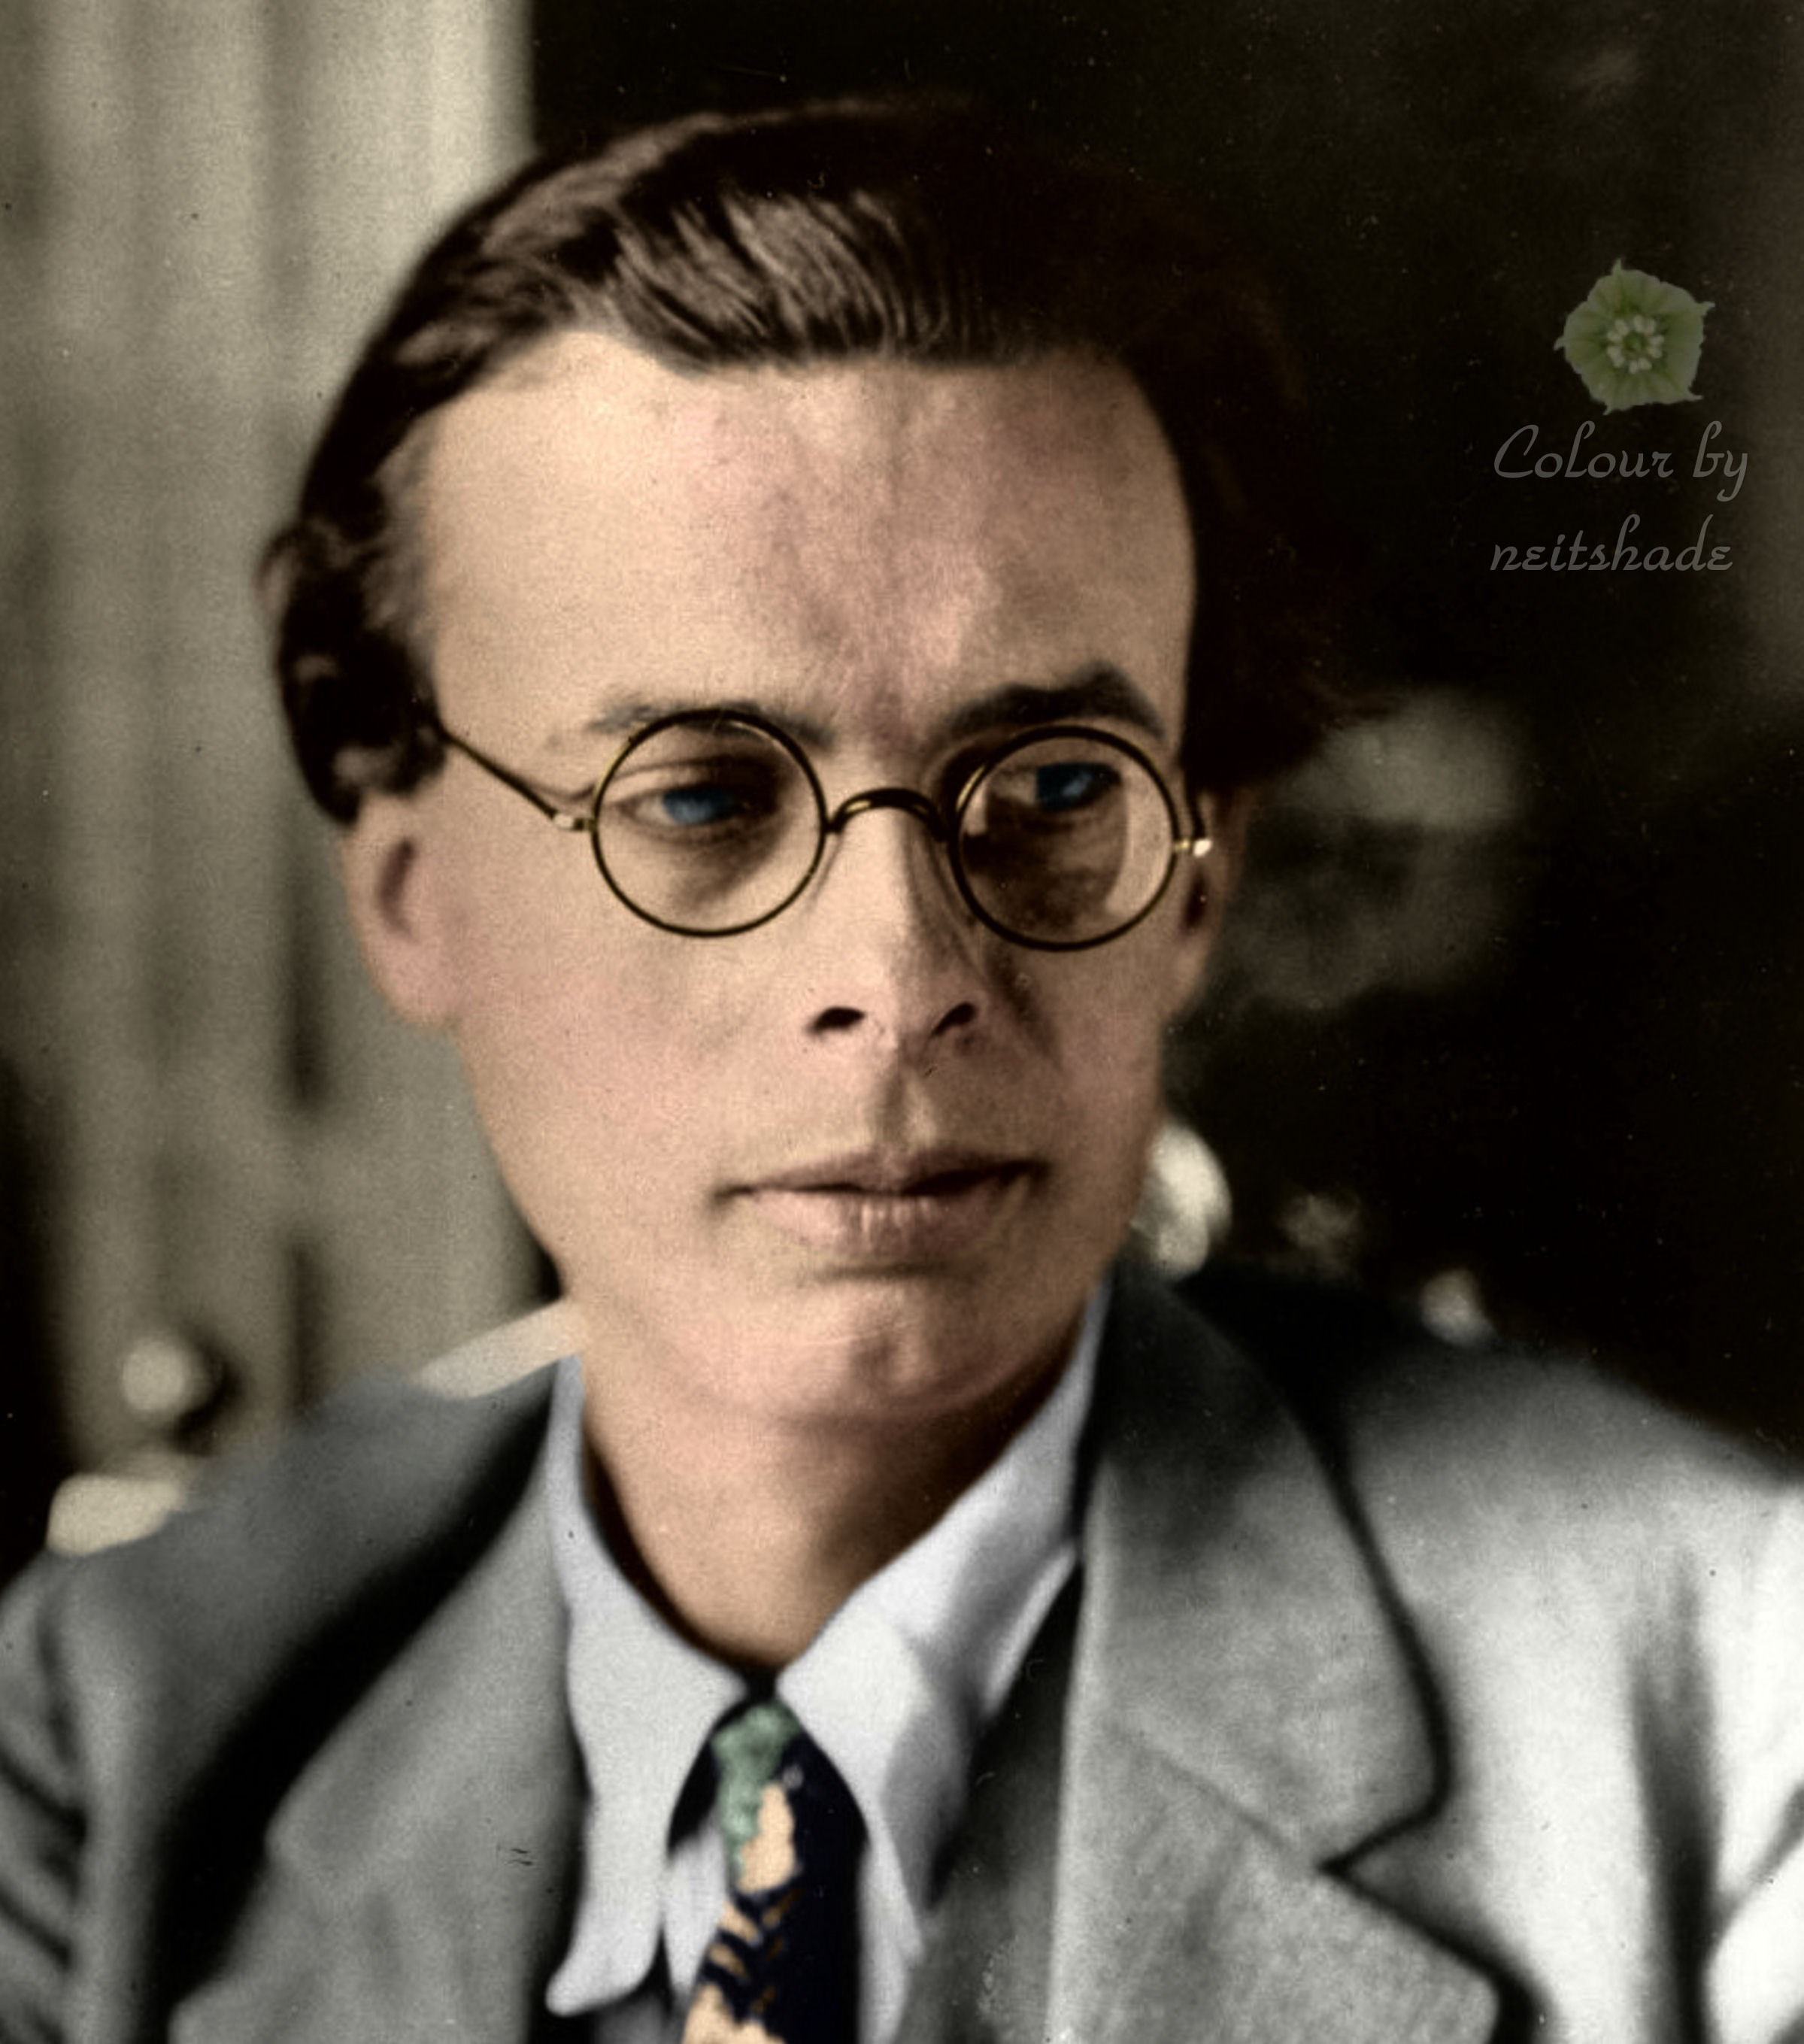 aldous huxley essay brave new world